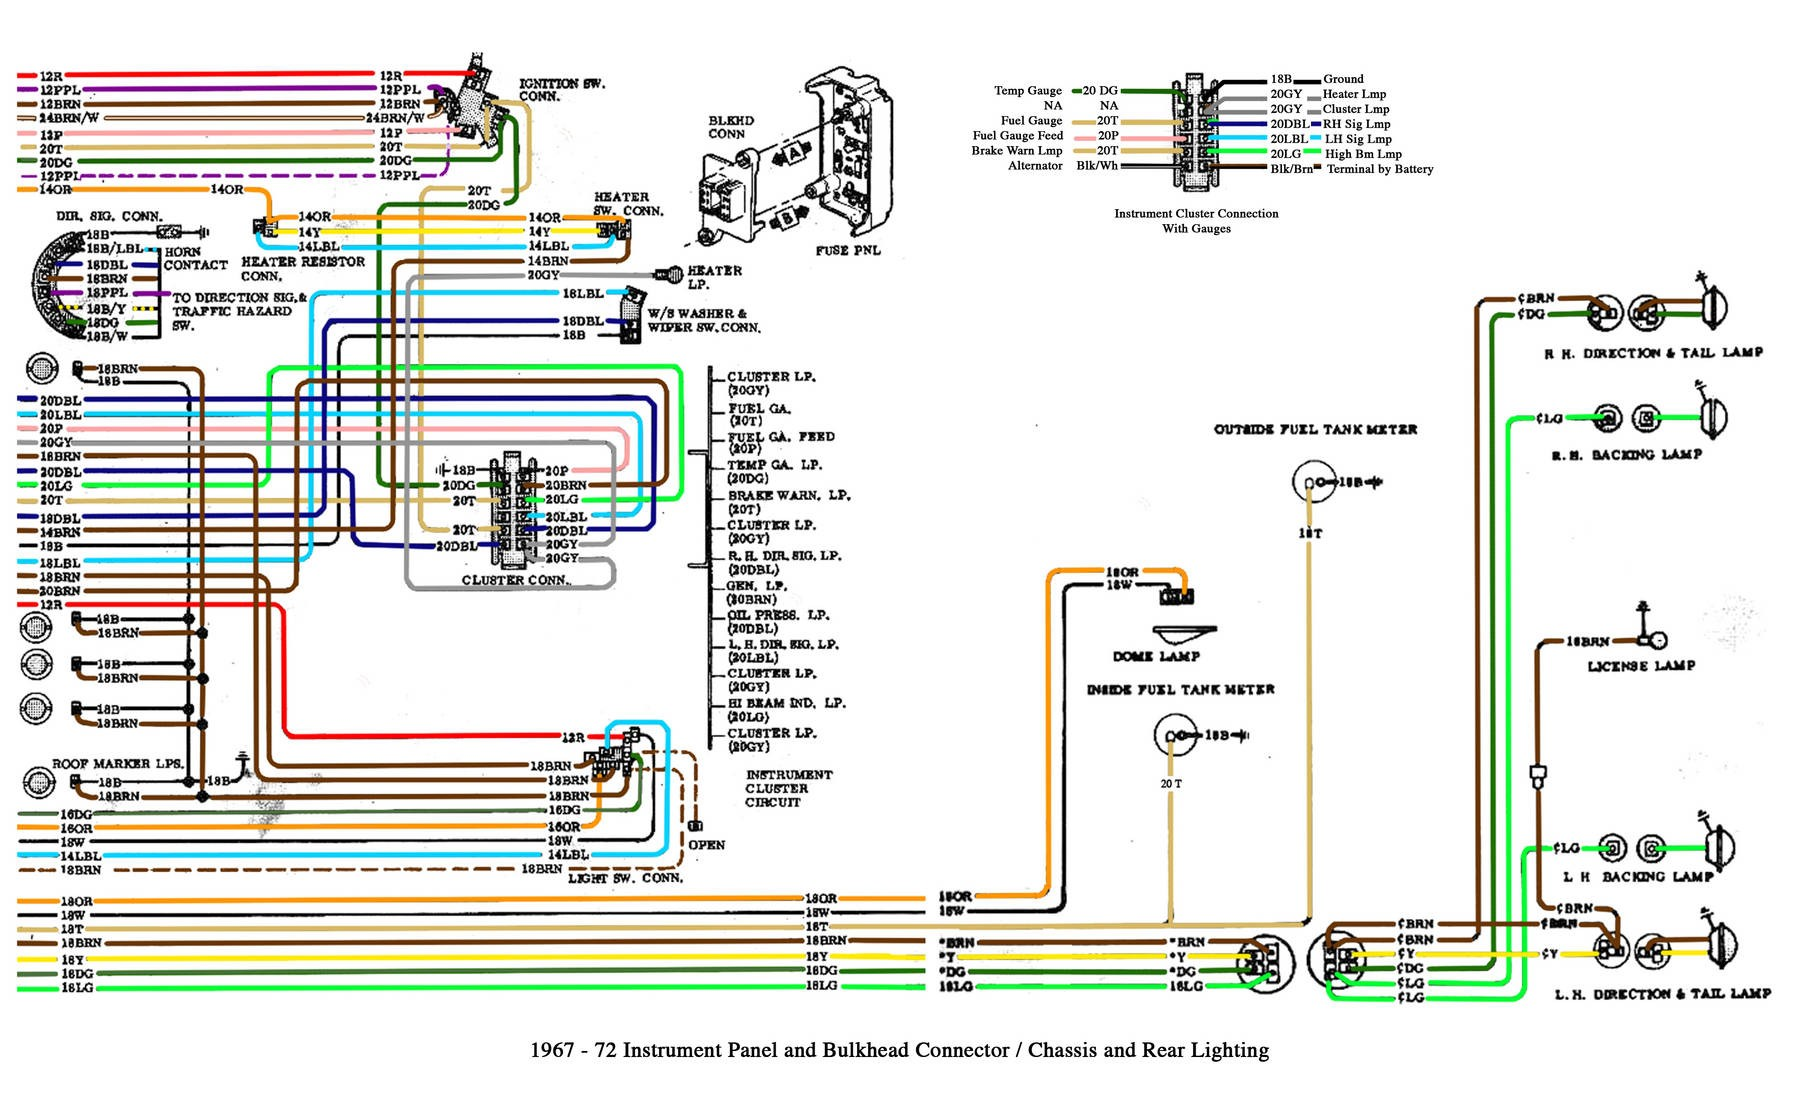 1970 ford radio wiring best site wiring diagram 1965 Ford Pickup Wiring Diagram 1998 ford f150 pickup truck car radio wiring diagram panel diagram 1997 ford 1988 ford f150 fuel pump wiring diagram more of 1998 ford f150 pickup truck car radio wiring diagram